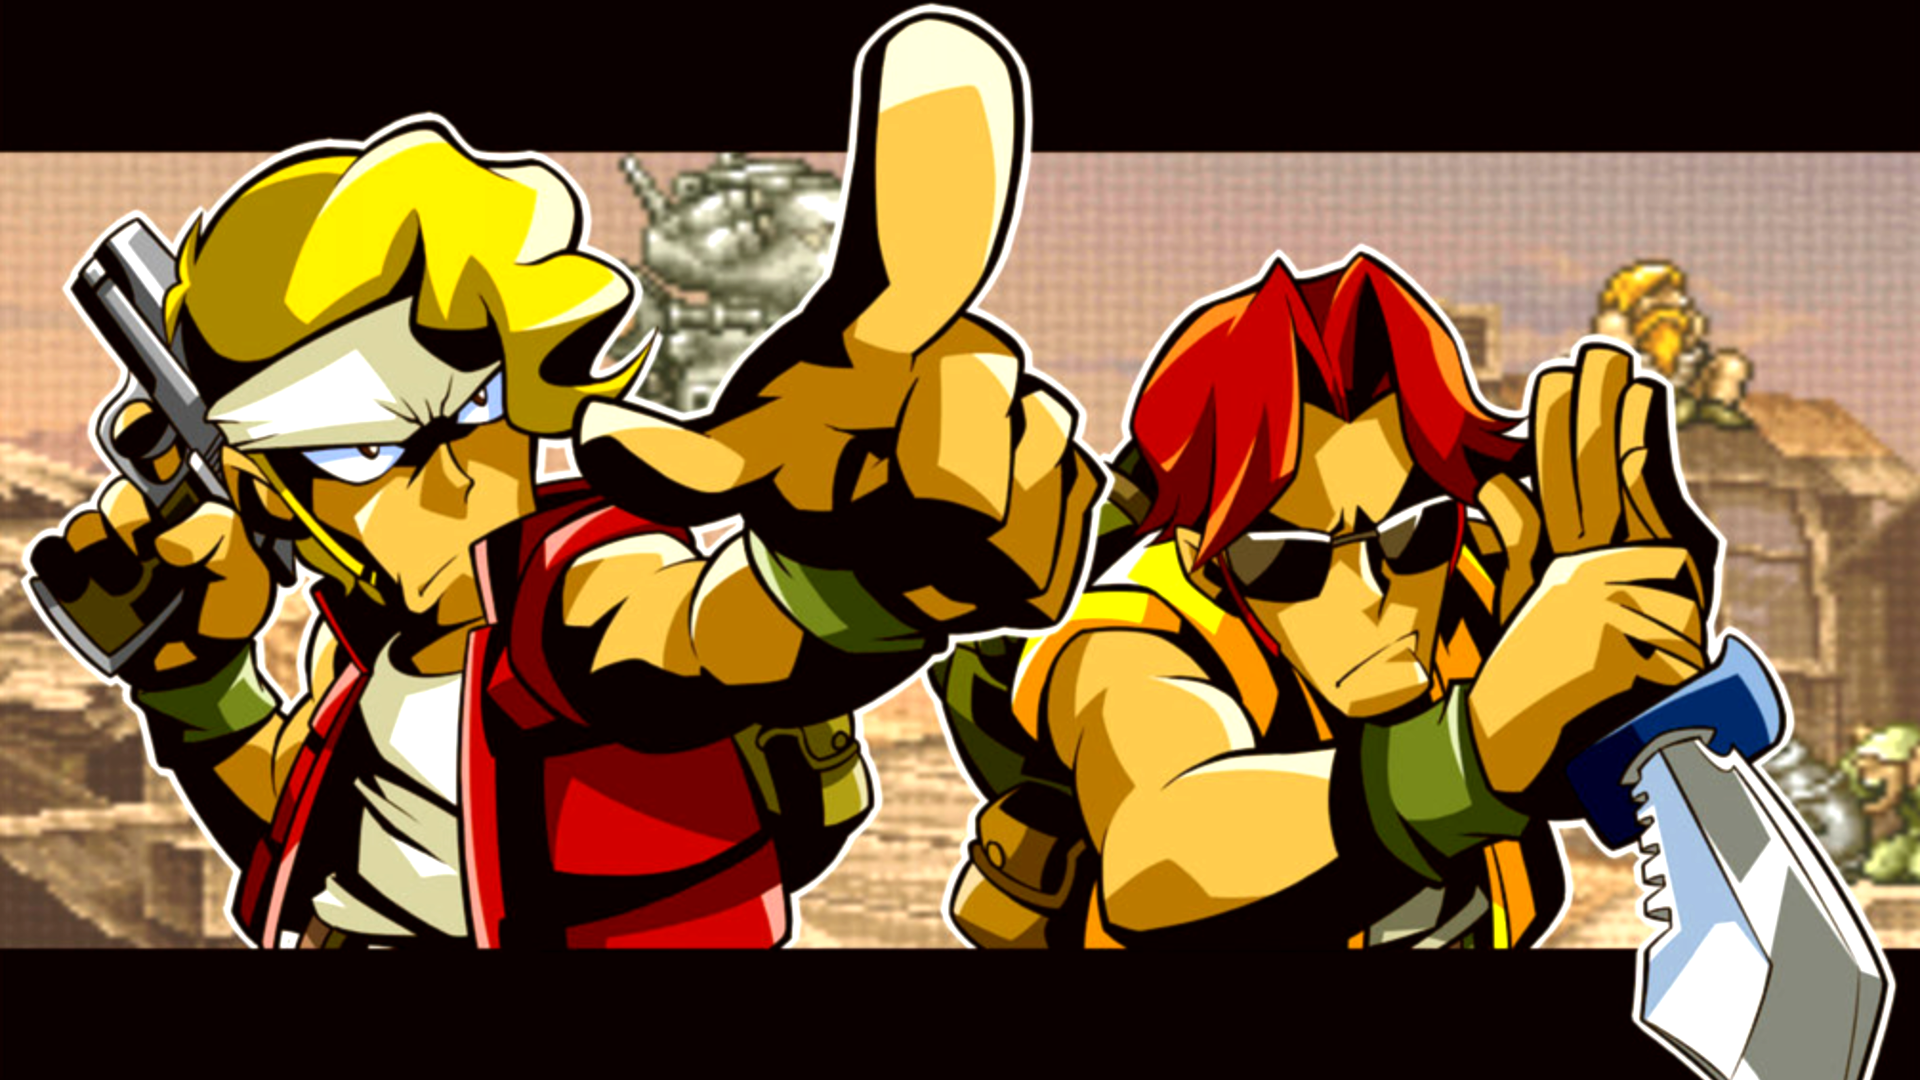 WinKawaks » Roms » Metal Slug: Super Vehicle-001 - The ...